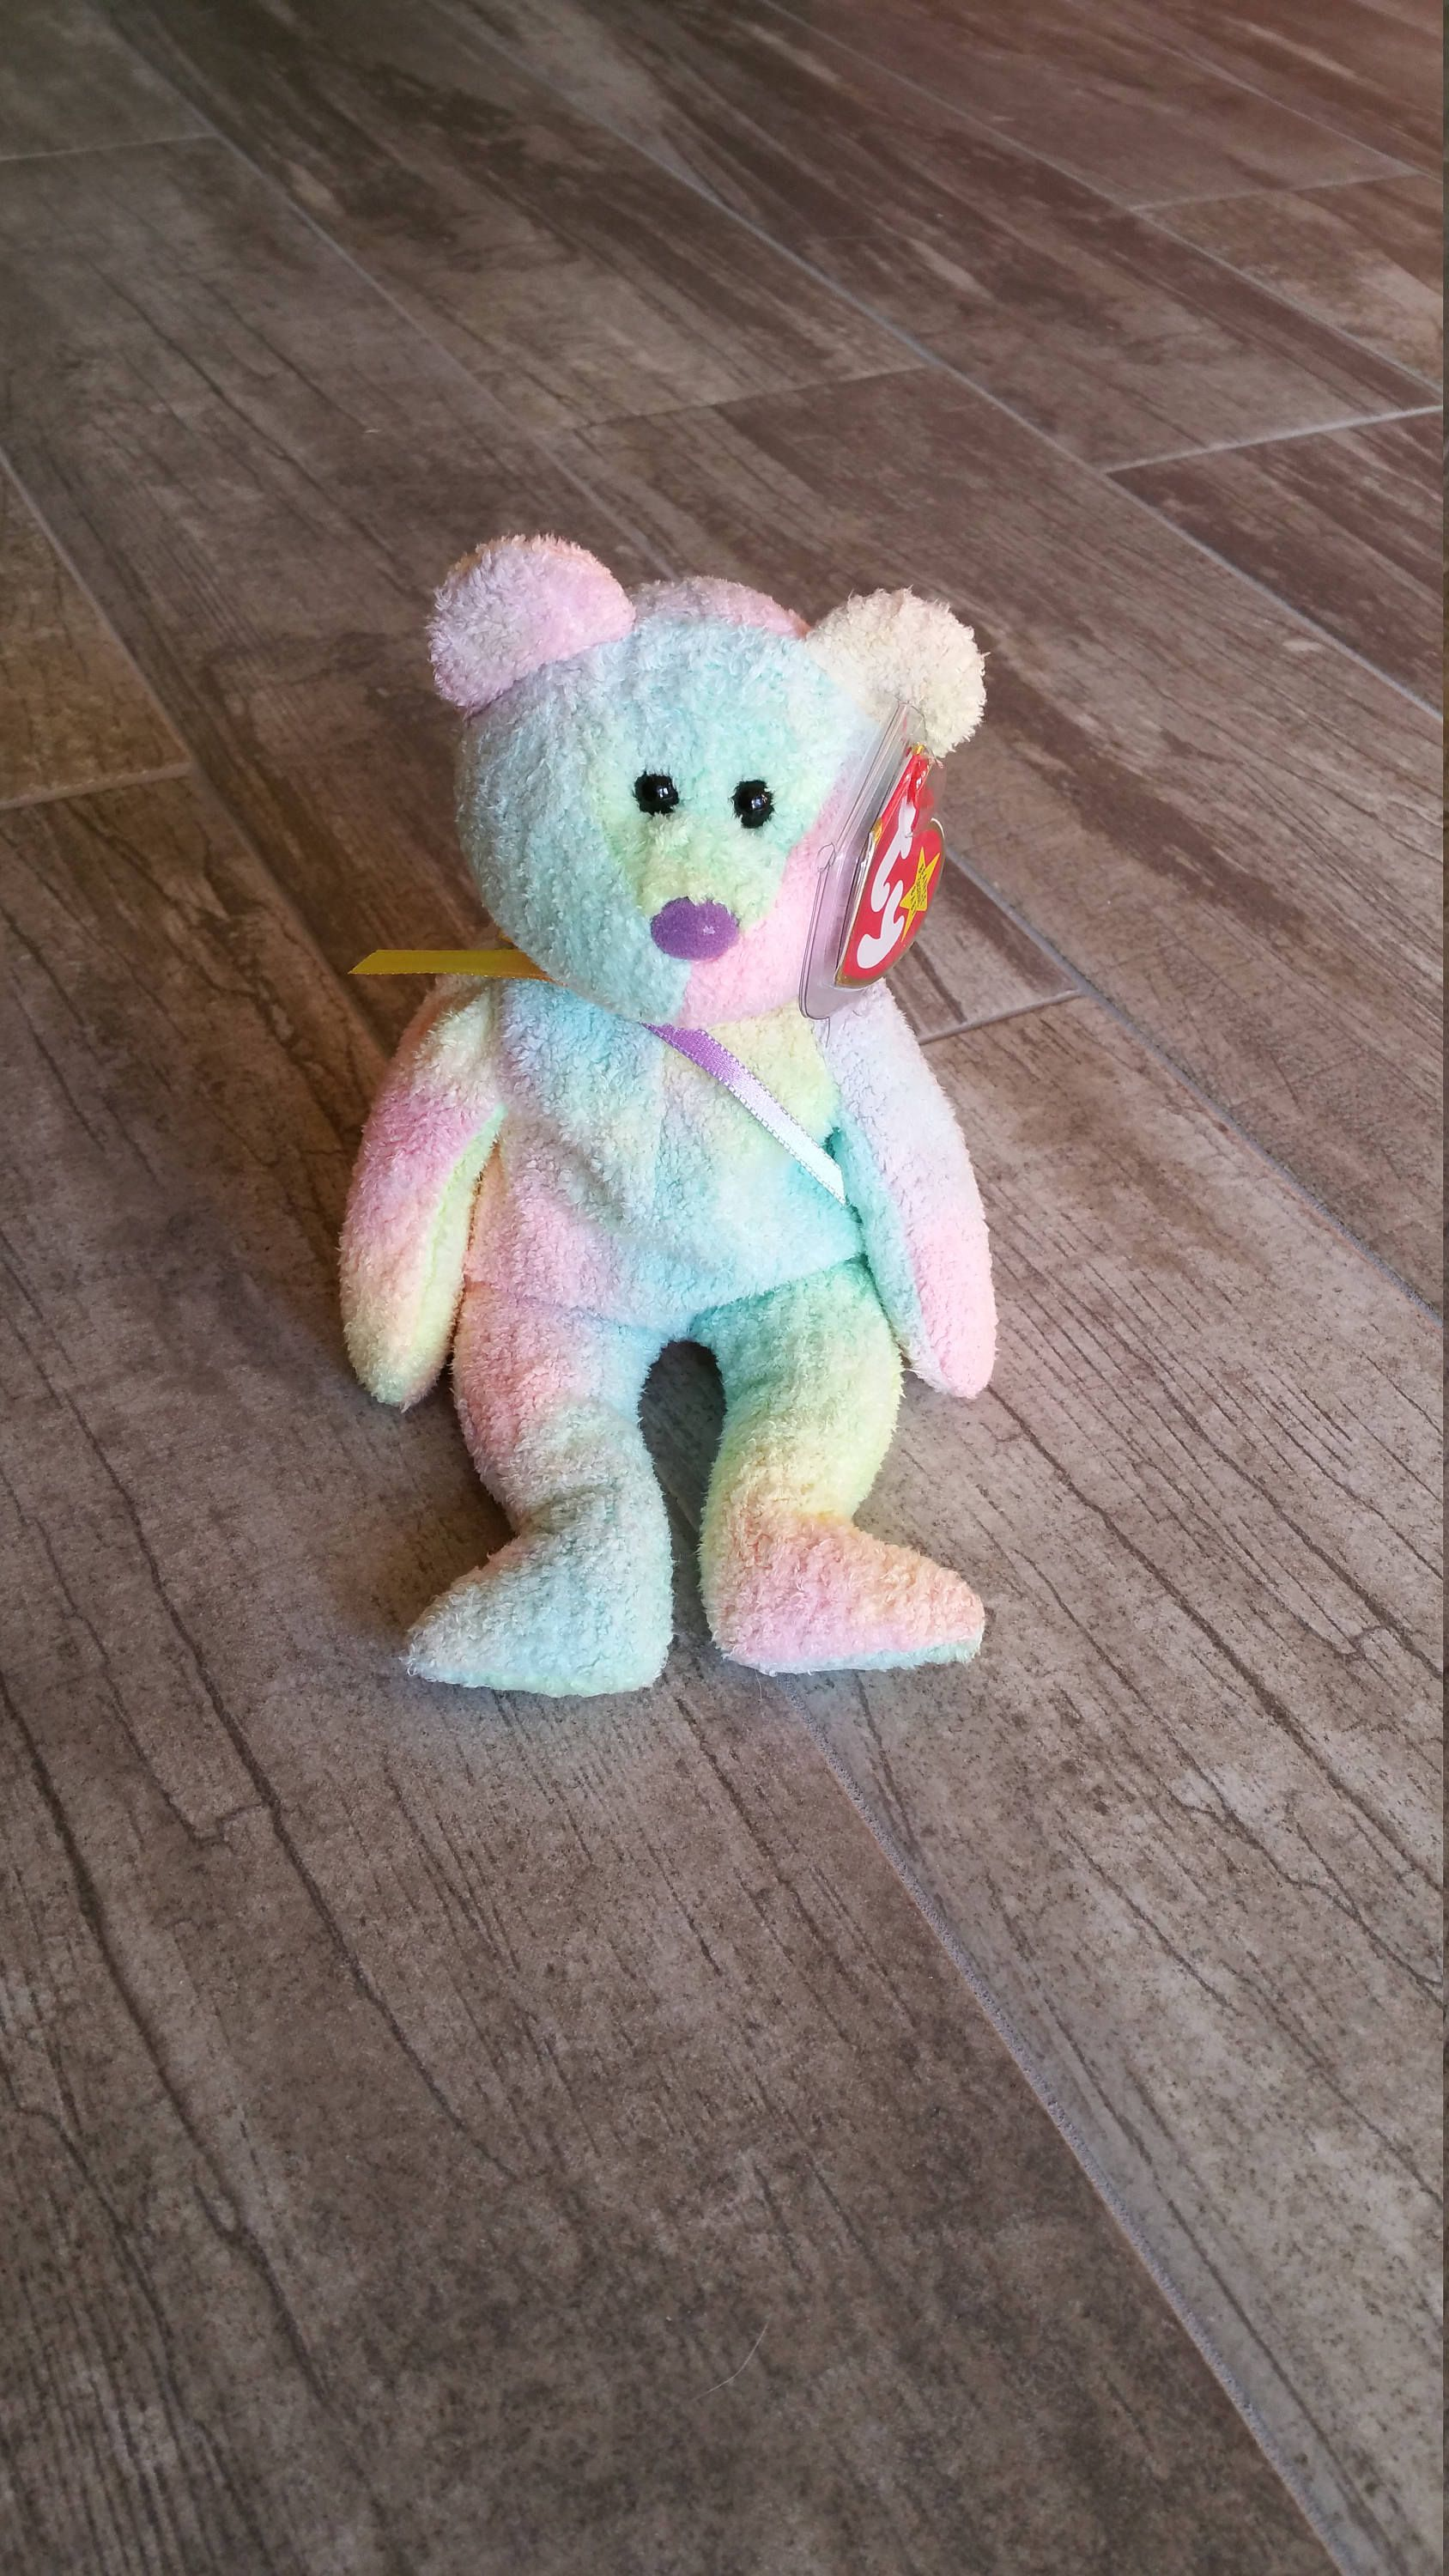 c041e252e88 Vintage TY Beanie Baby - Birthday Gift - Pastel Tie Dye - Birthday Decor -  Baby Shower Gift - Rare Collectible - Groovy the Rainbow Bear by ...